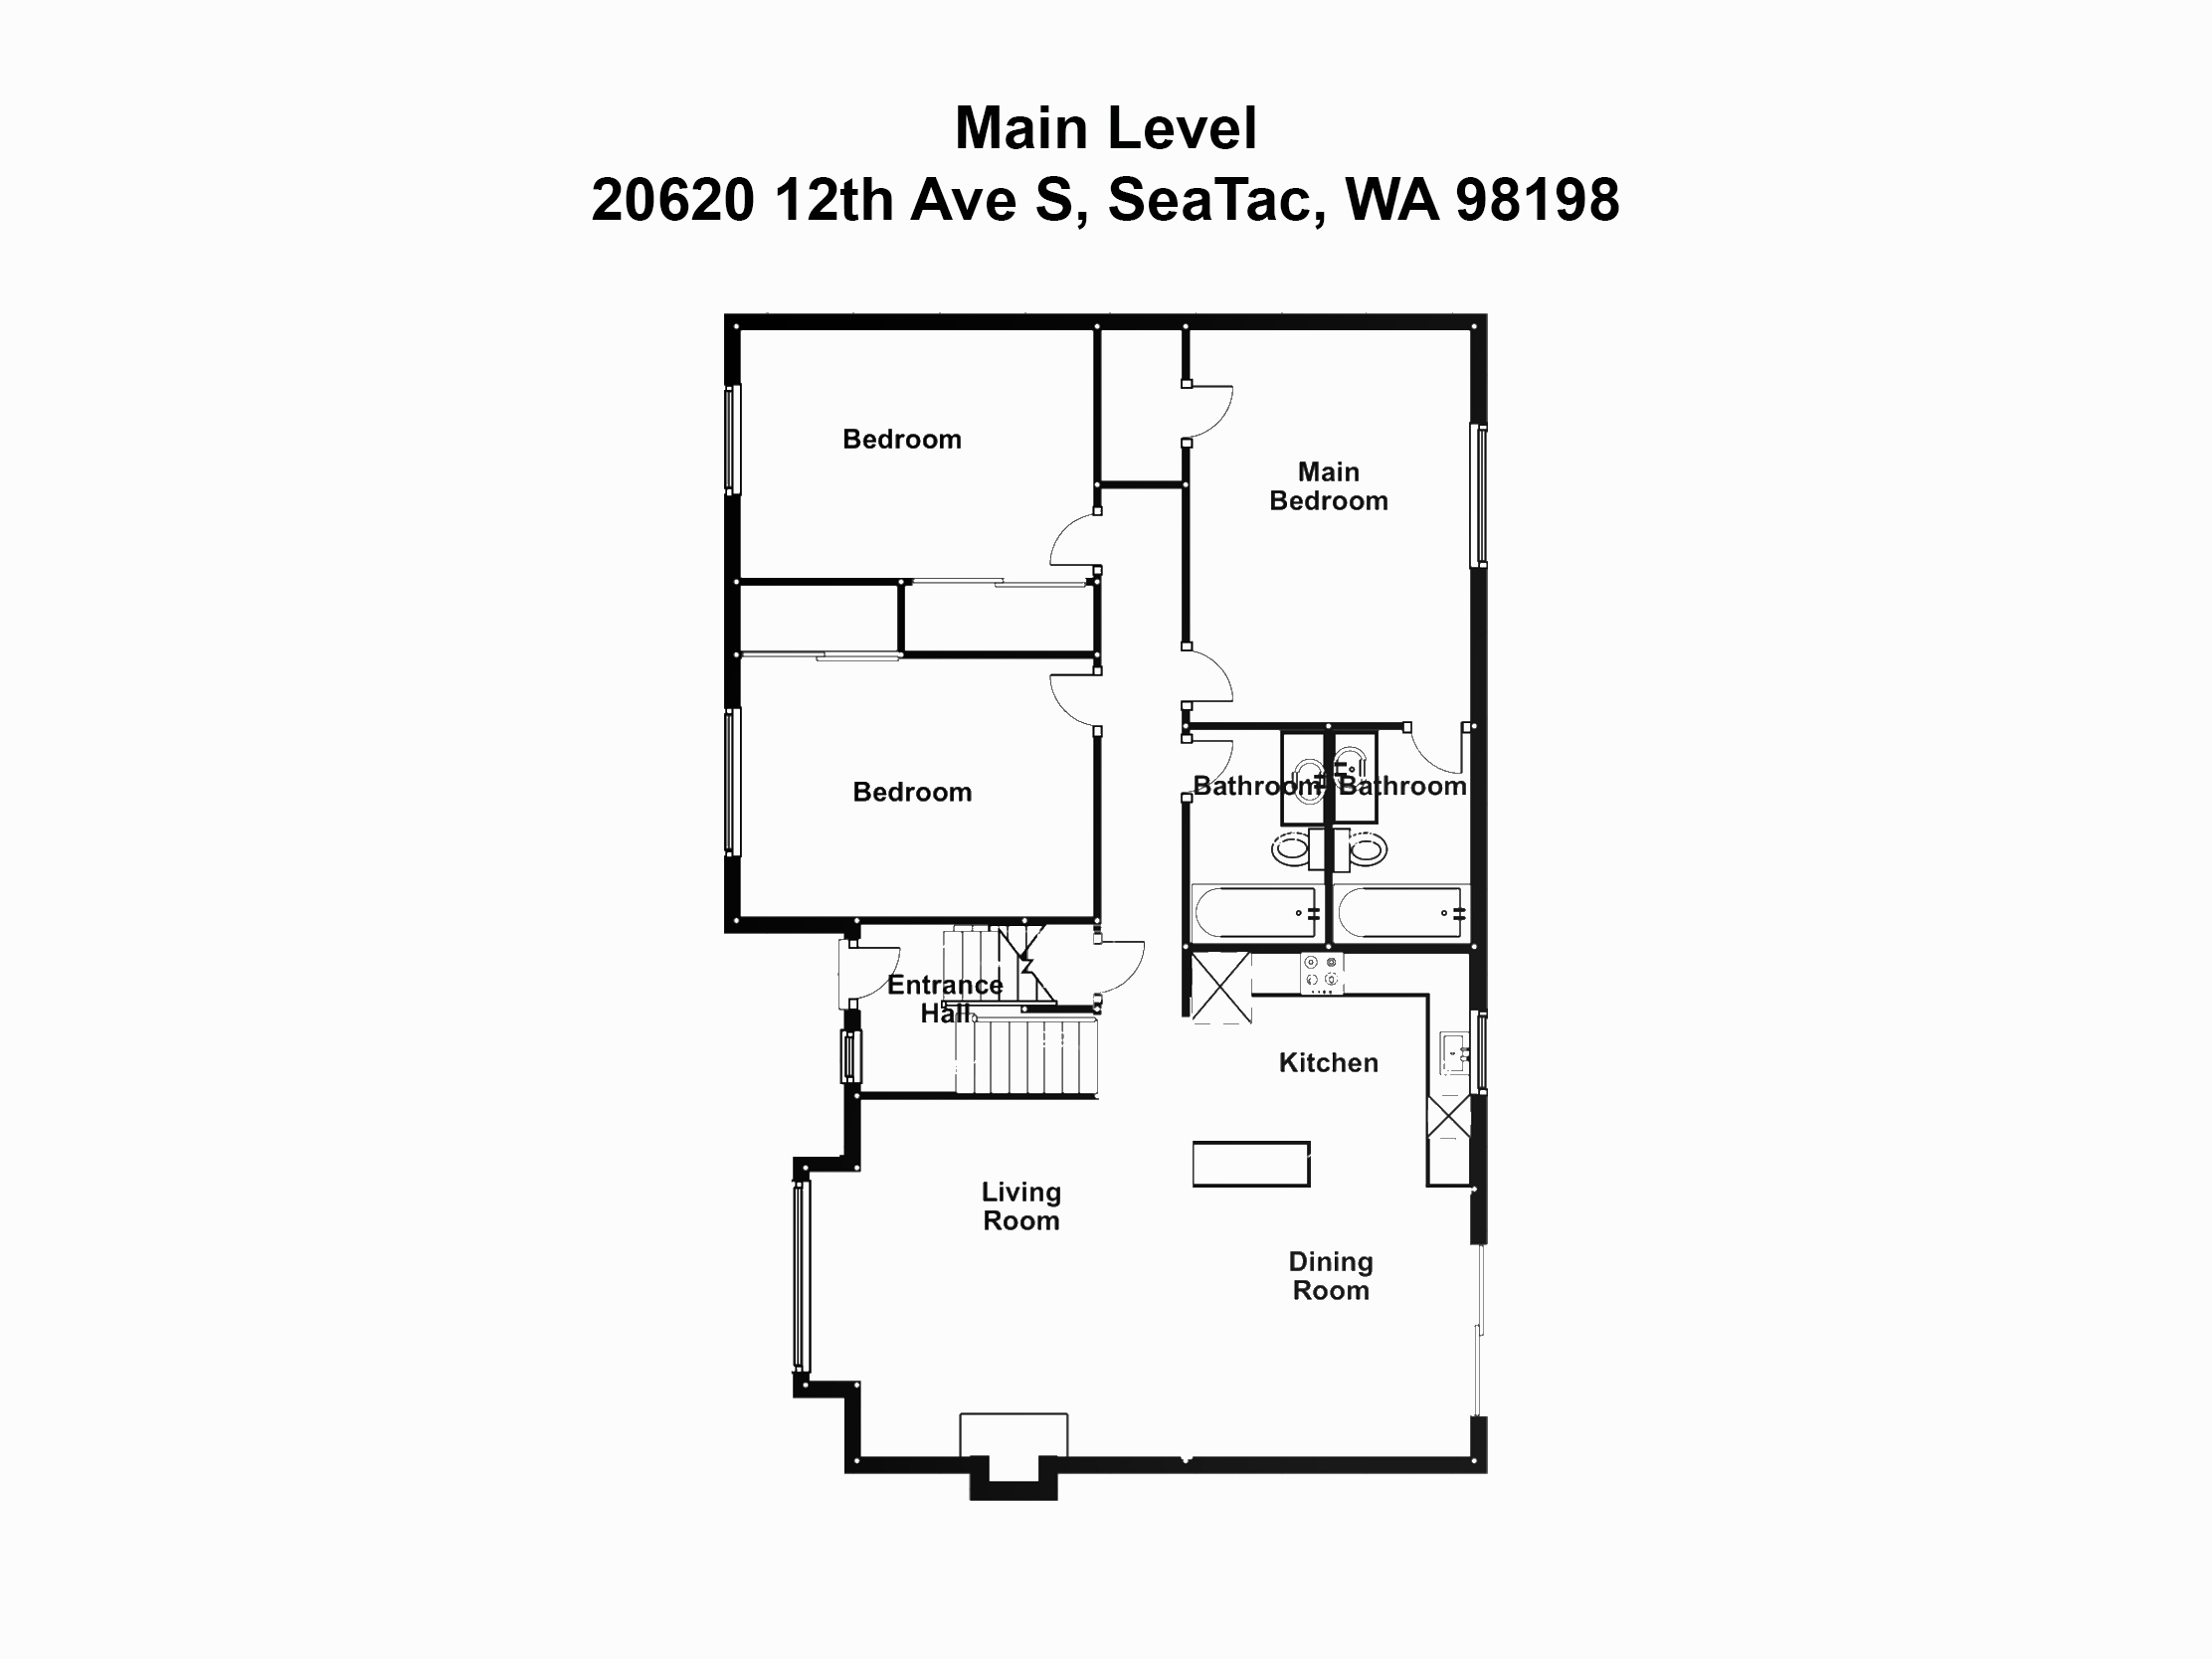 2-Main Level 20620 12th Ave S, SeaTac, W